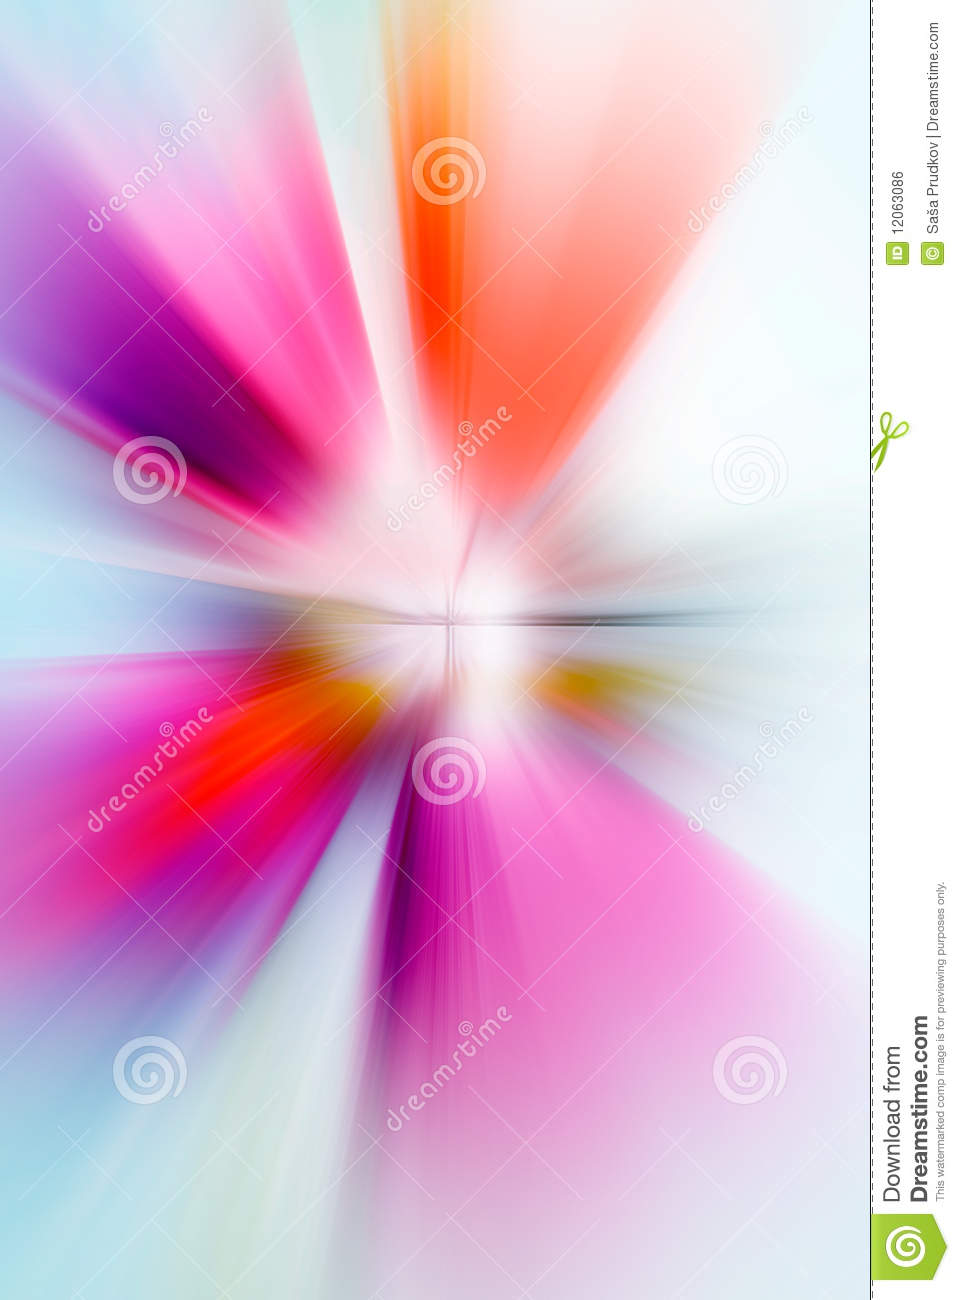 Abstract background made of exploding colors